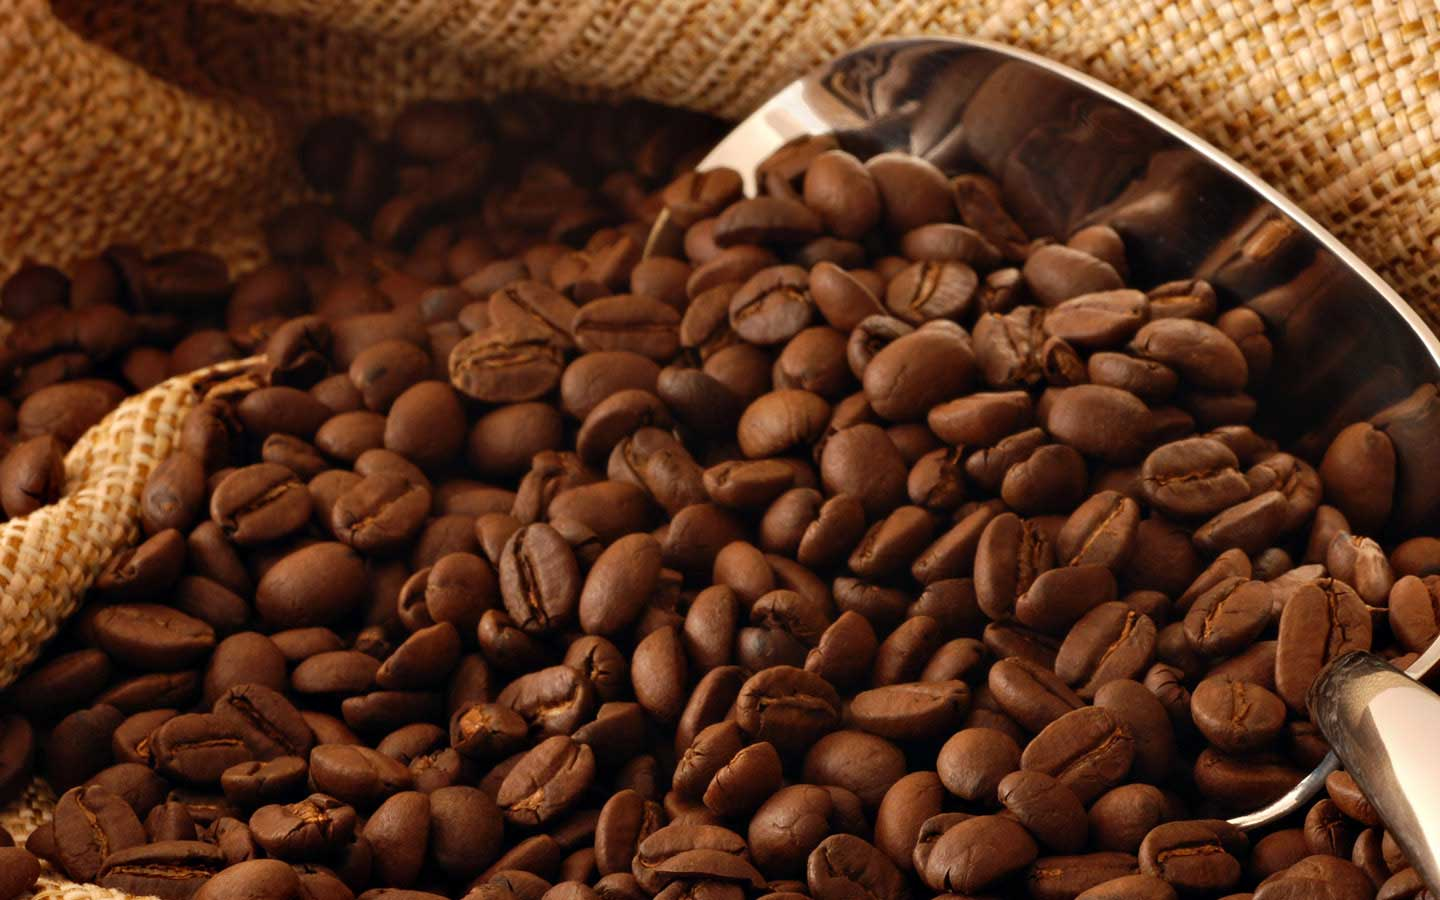 Freshly roasted Origin Coffee beans